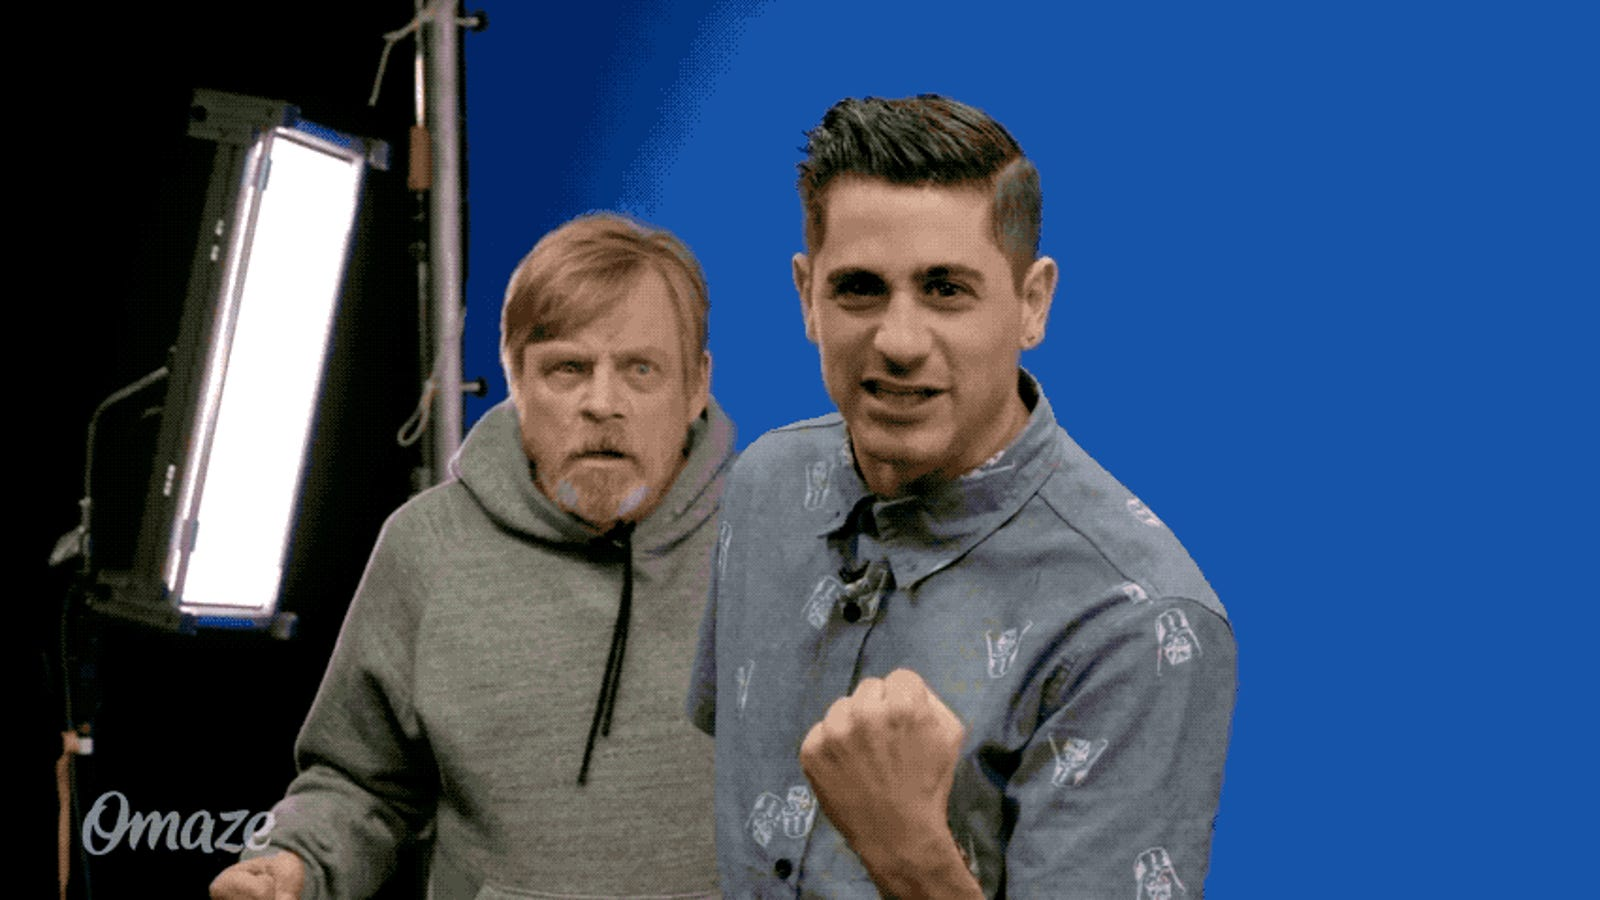 Here Are a Bunch of People Mark Hamill Freaked Out During 'Force For Change' Promo